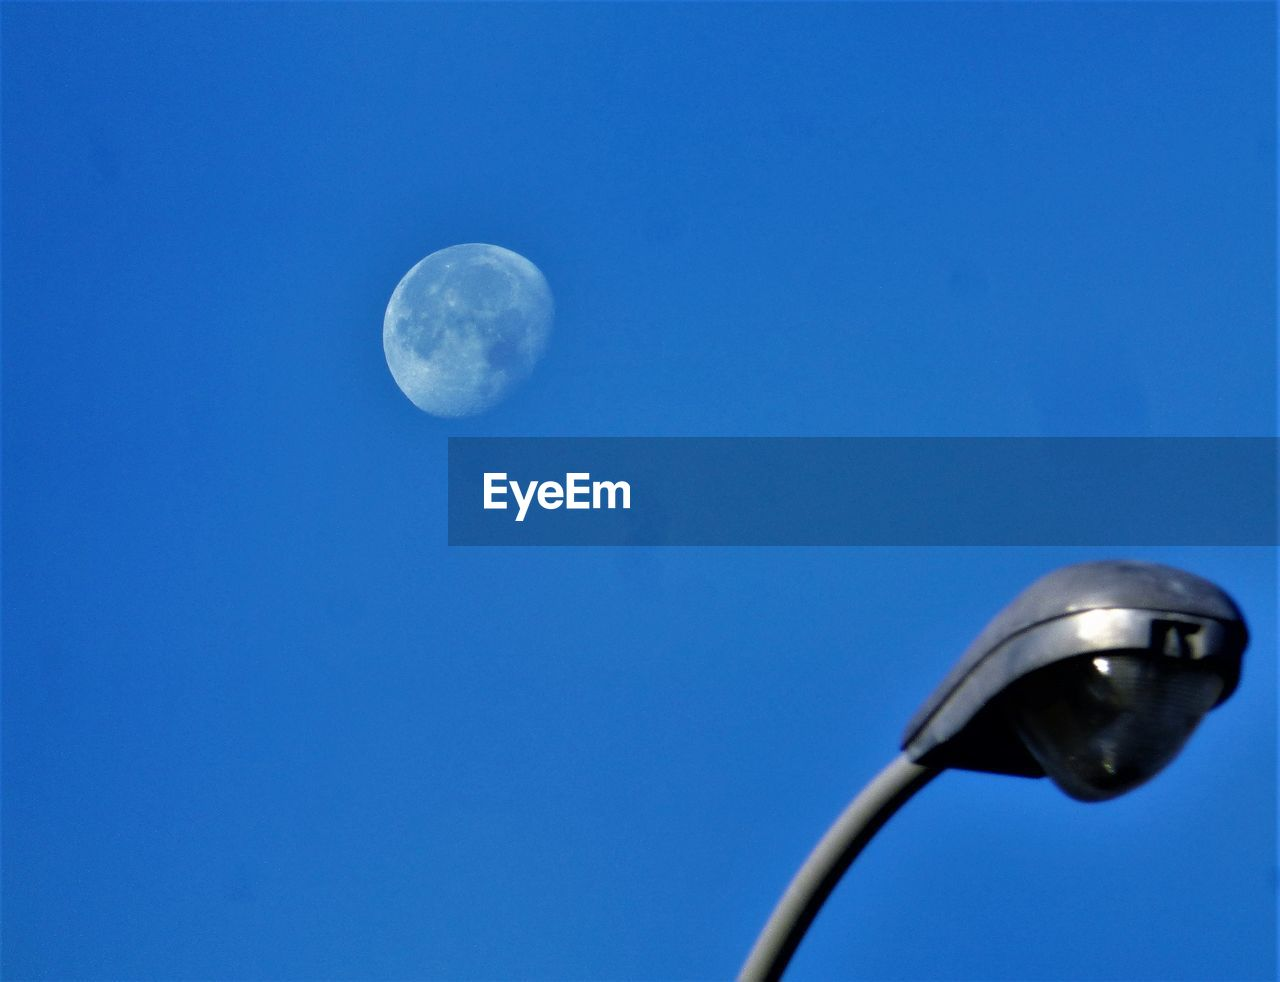 moon, no people, nature, blue, clear sky, low angle view, beauty in nature, close-up, outdoors, day, astronomy